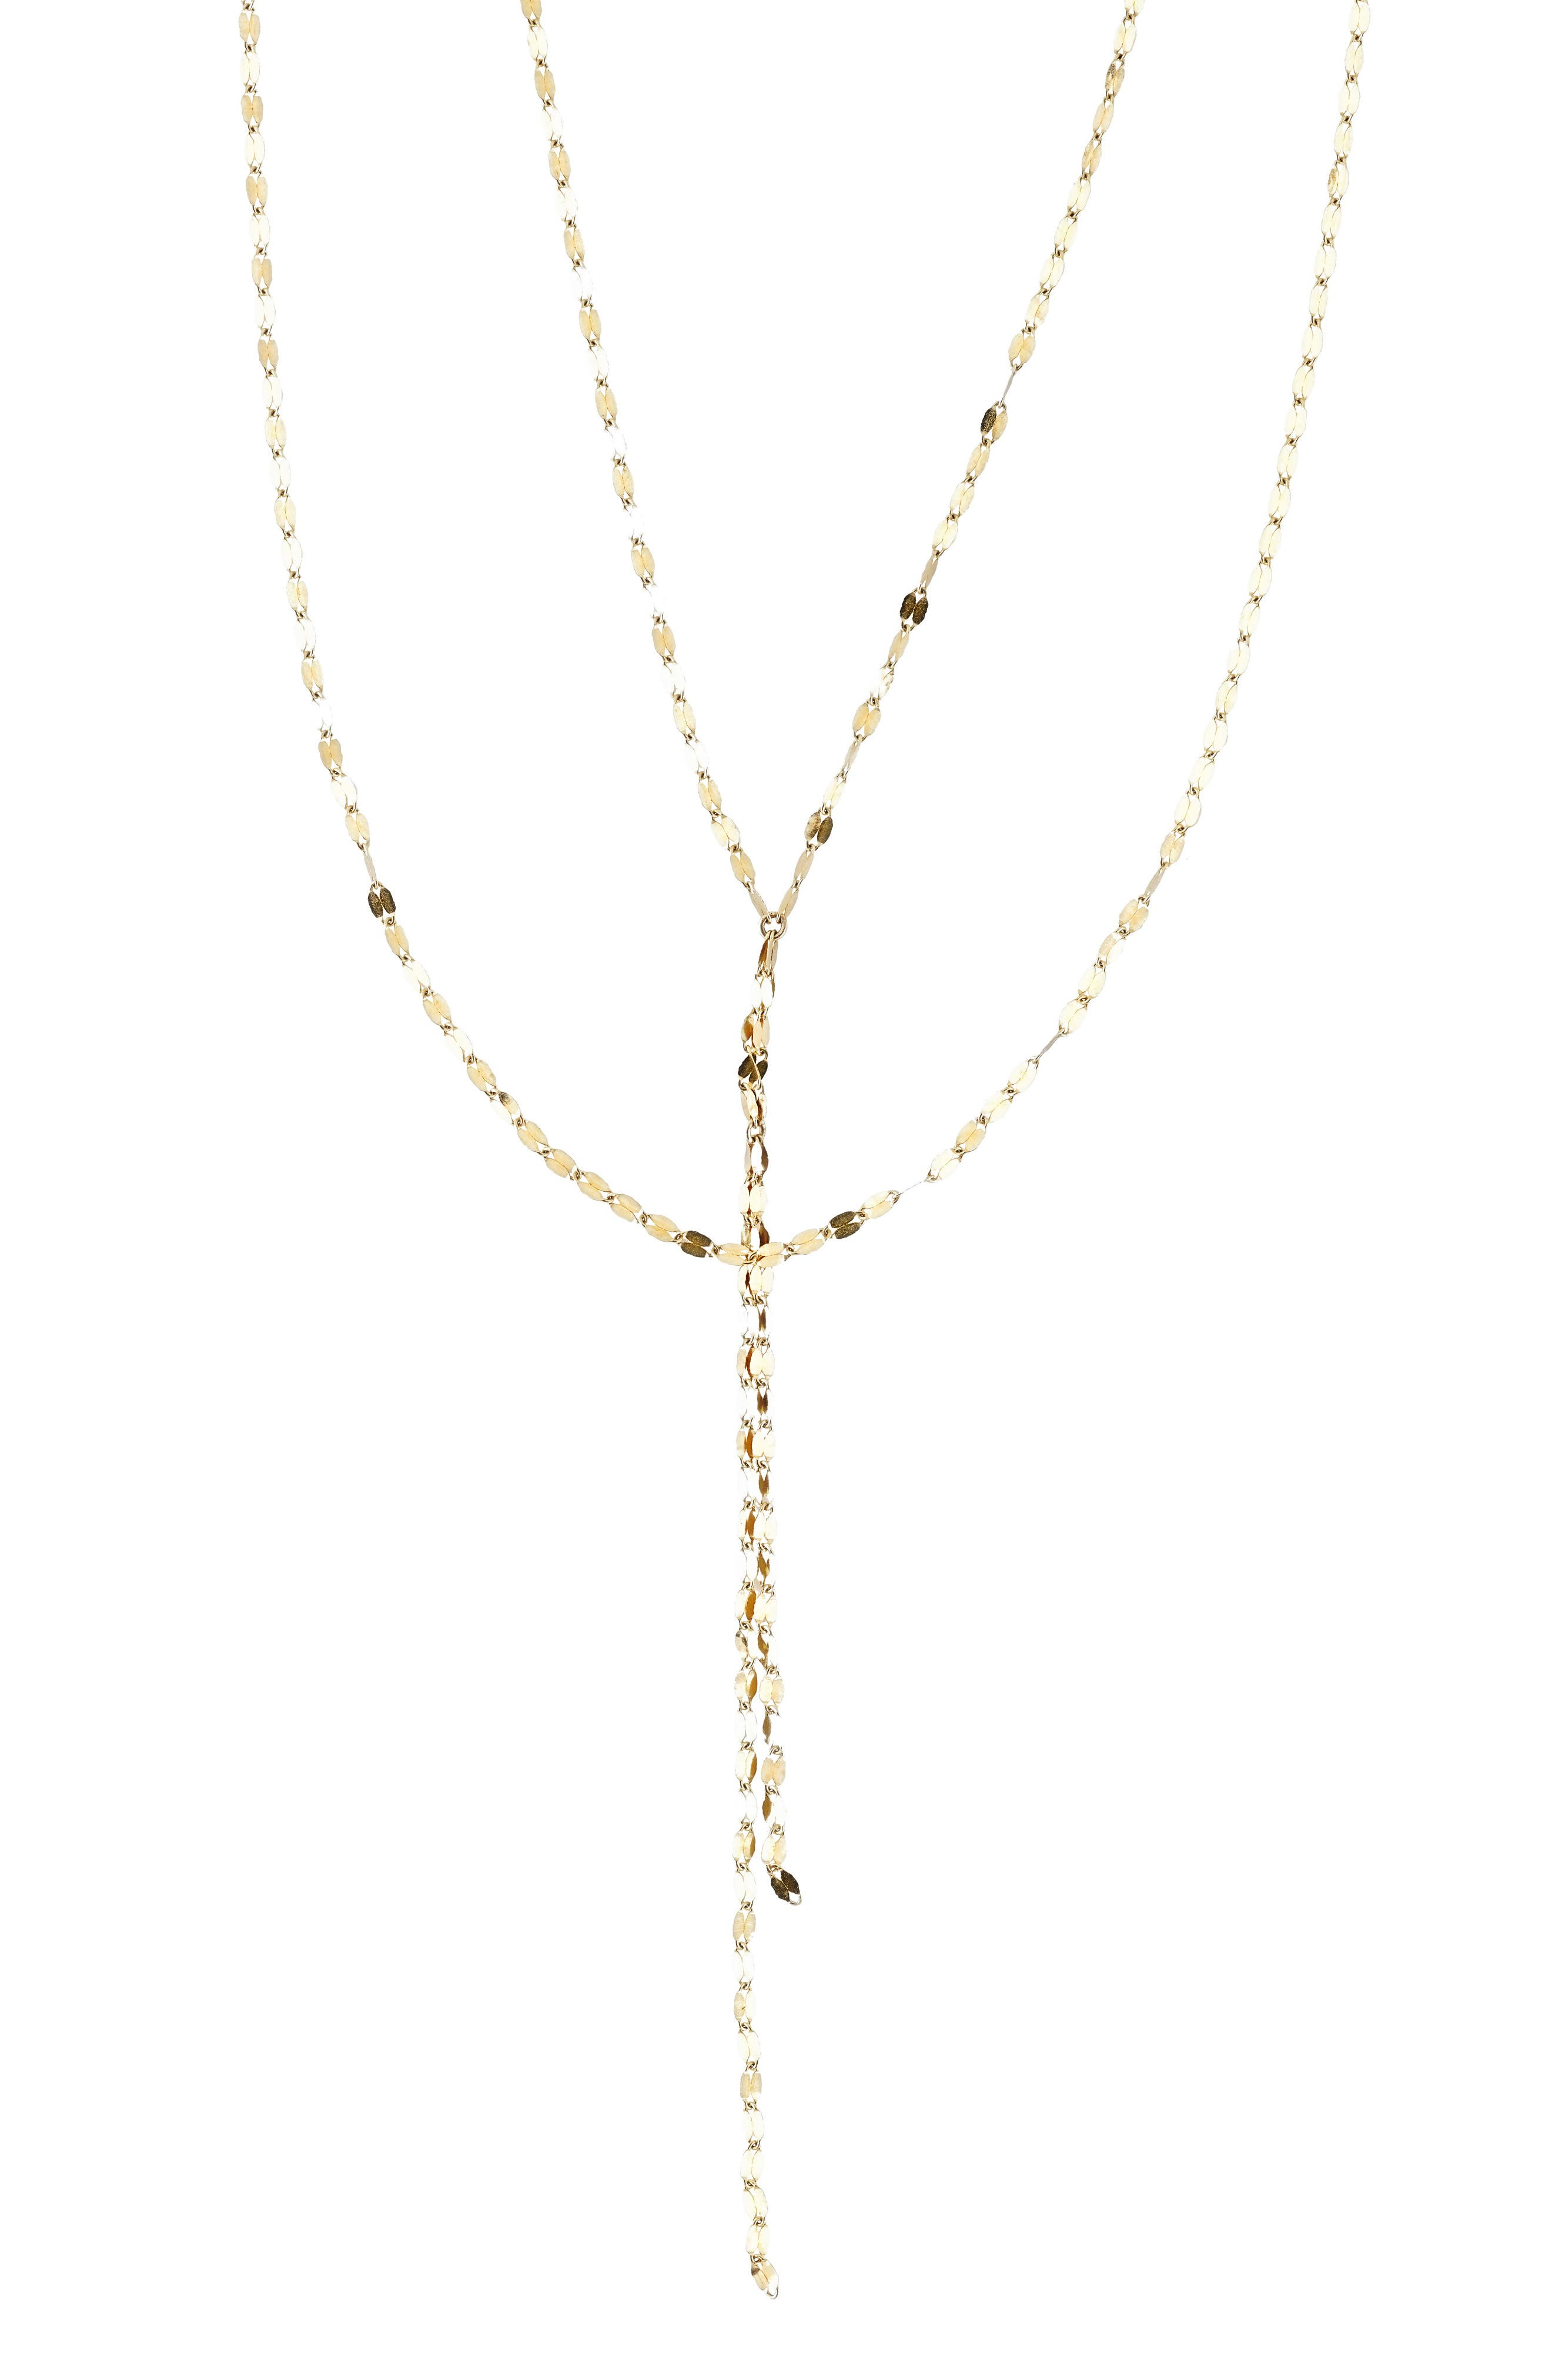 Multistrand Necklace,                         Main,                         color, Yellow Gold